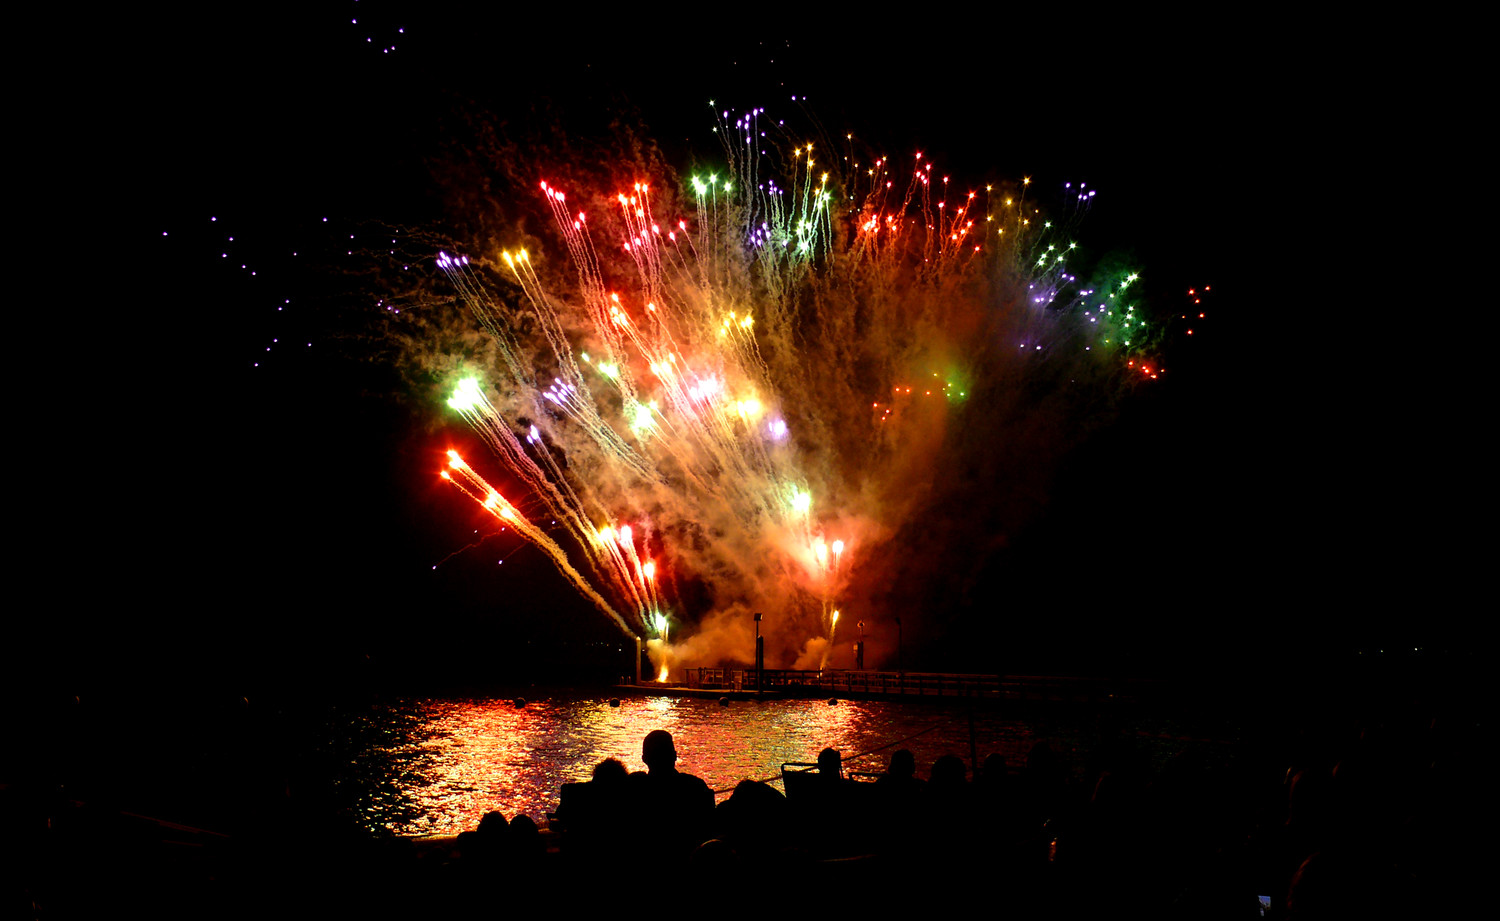 Island Park's Labor Day fireworks were presented by Grucci, whose displays have graced the skies at presidential inaugurations, 4ths of Julys and grand openings across the world.